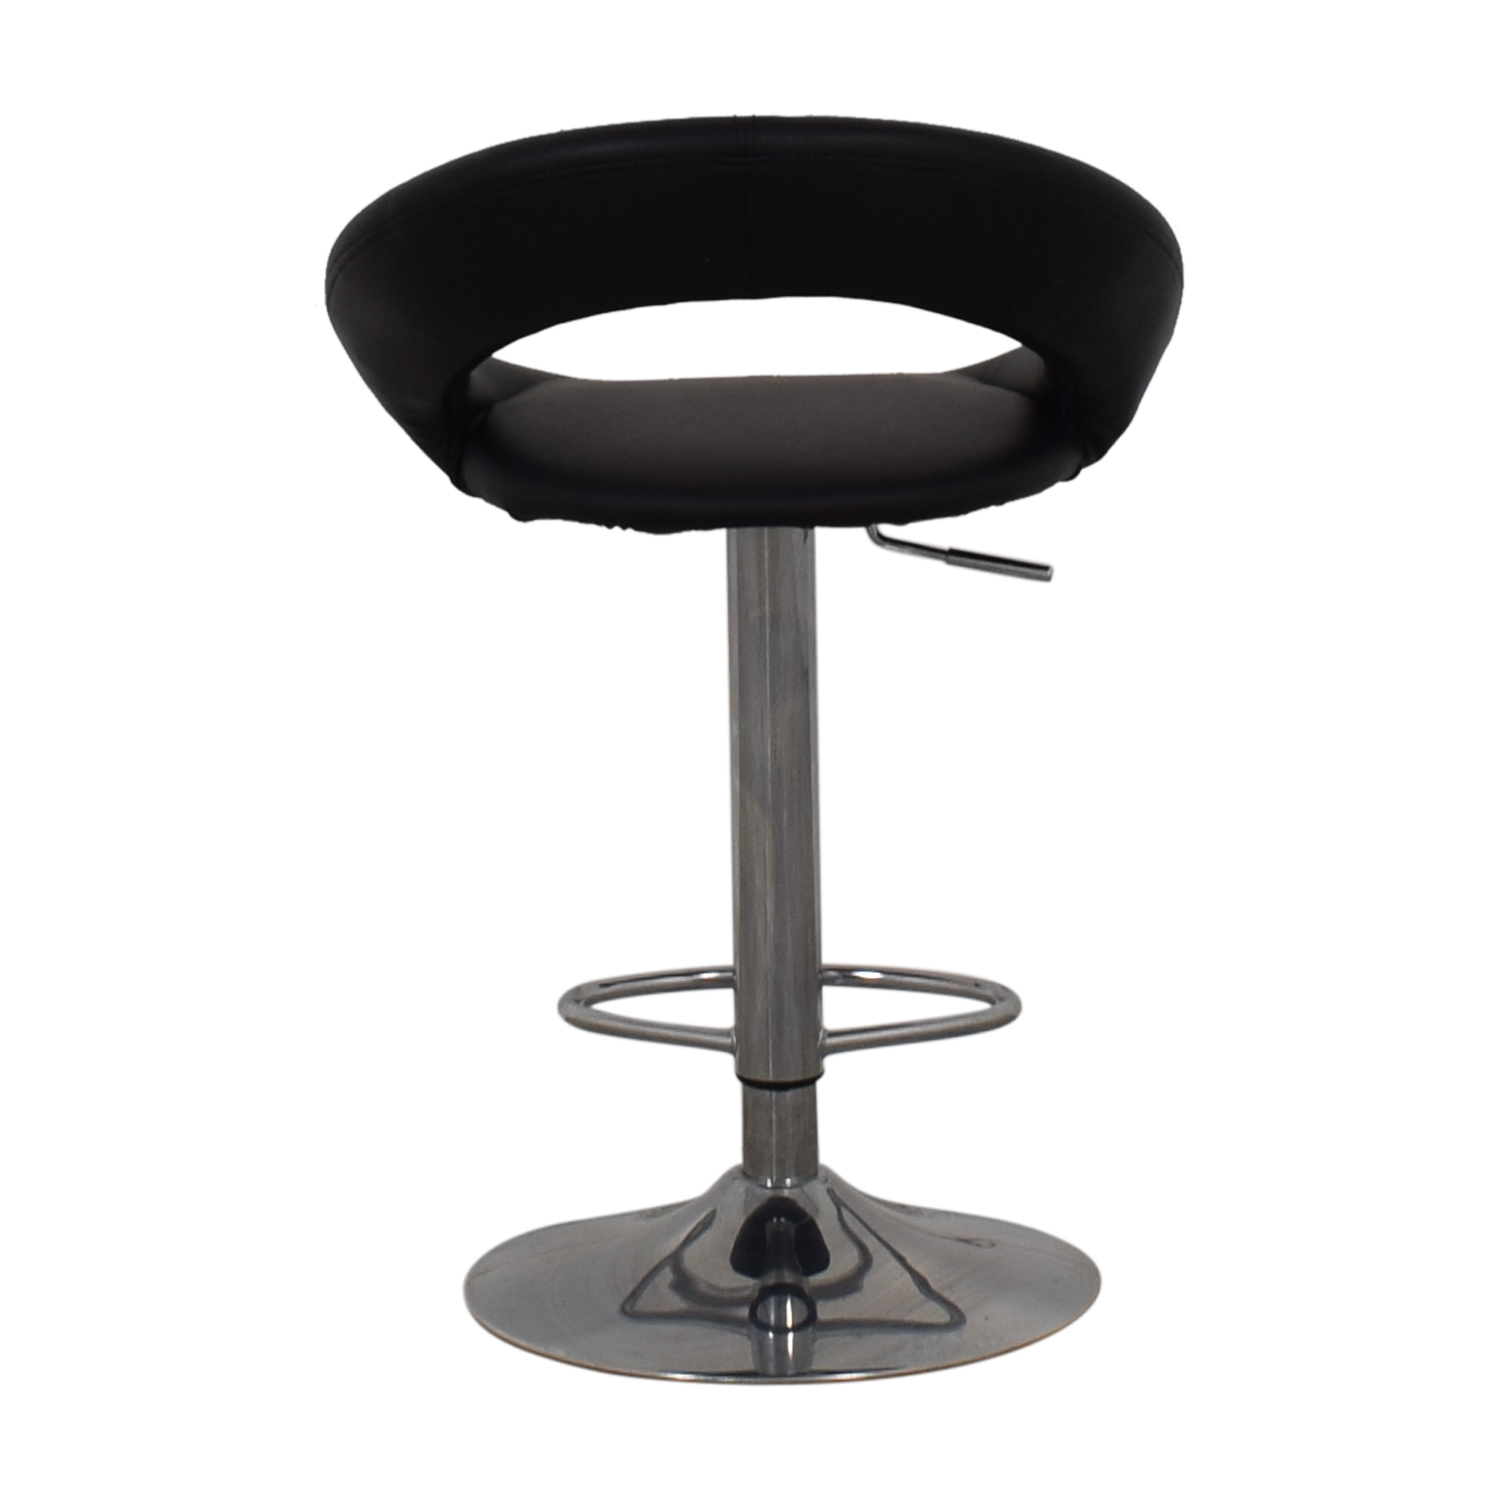 Lumisource Lumisource Kathleen Black Bar Stool for sale